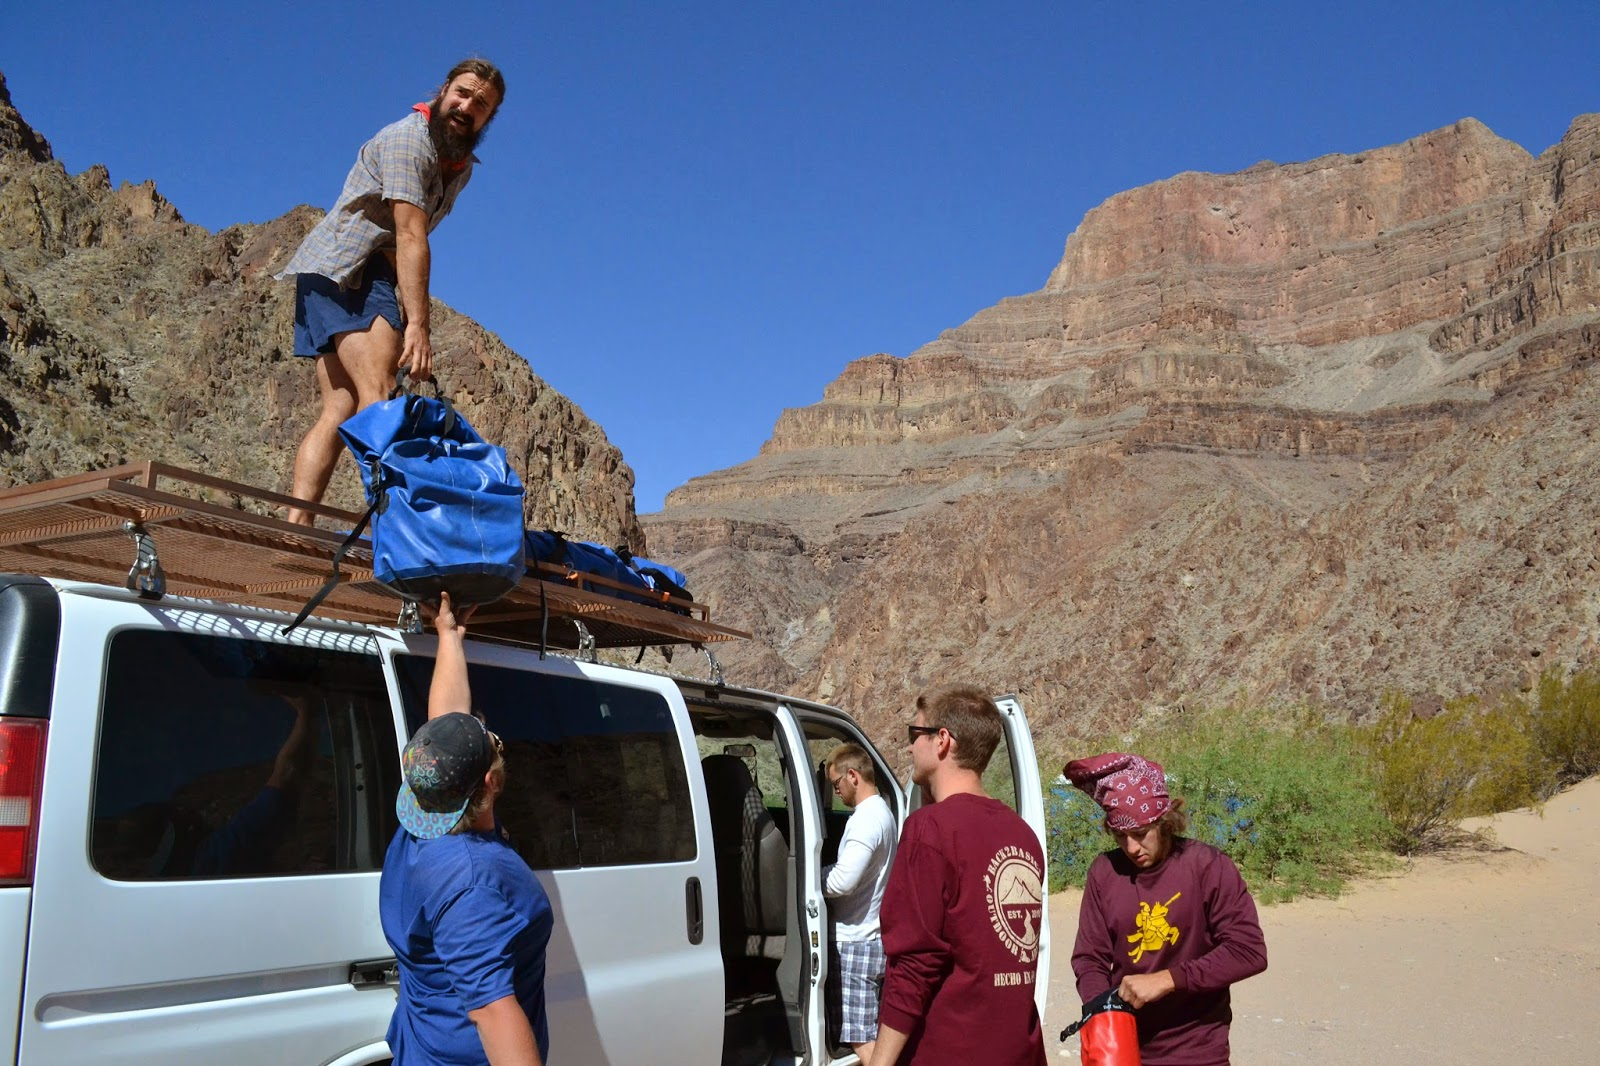 standing on van in grand canyon